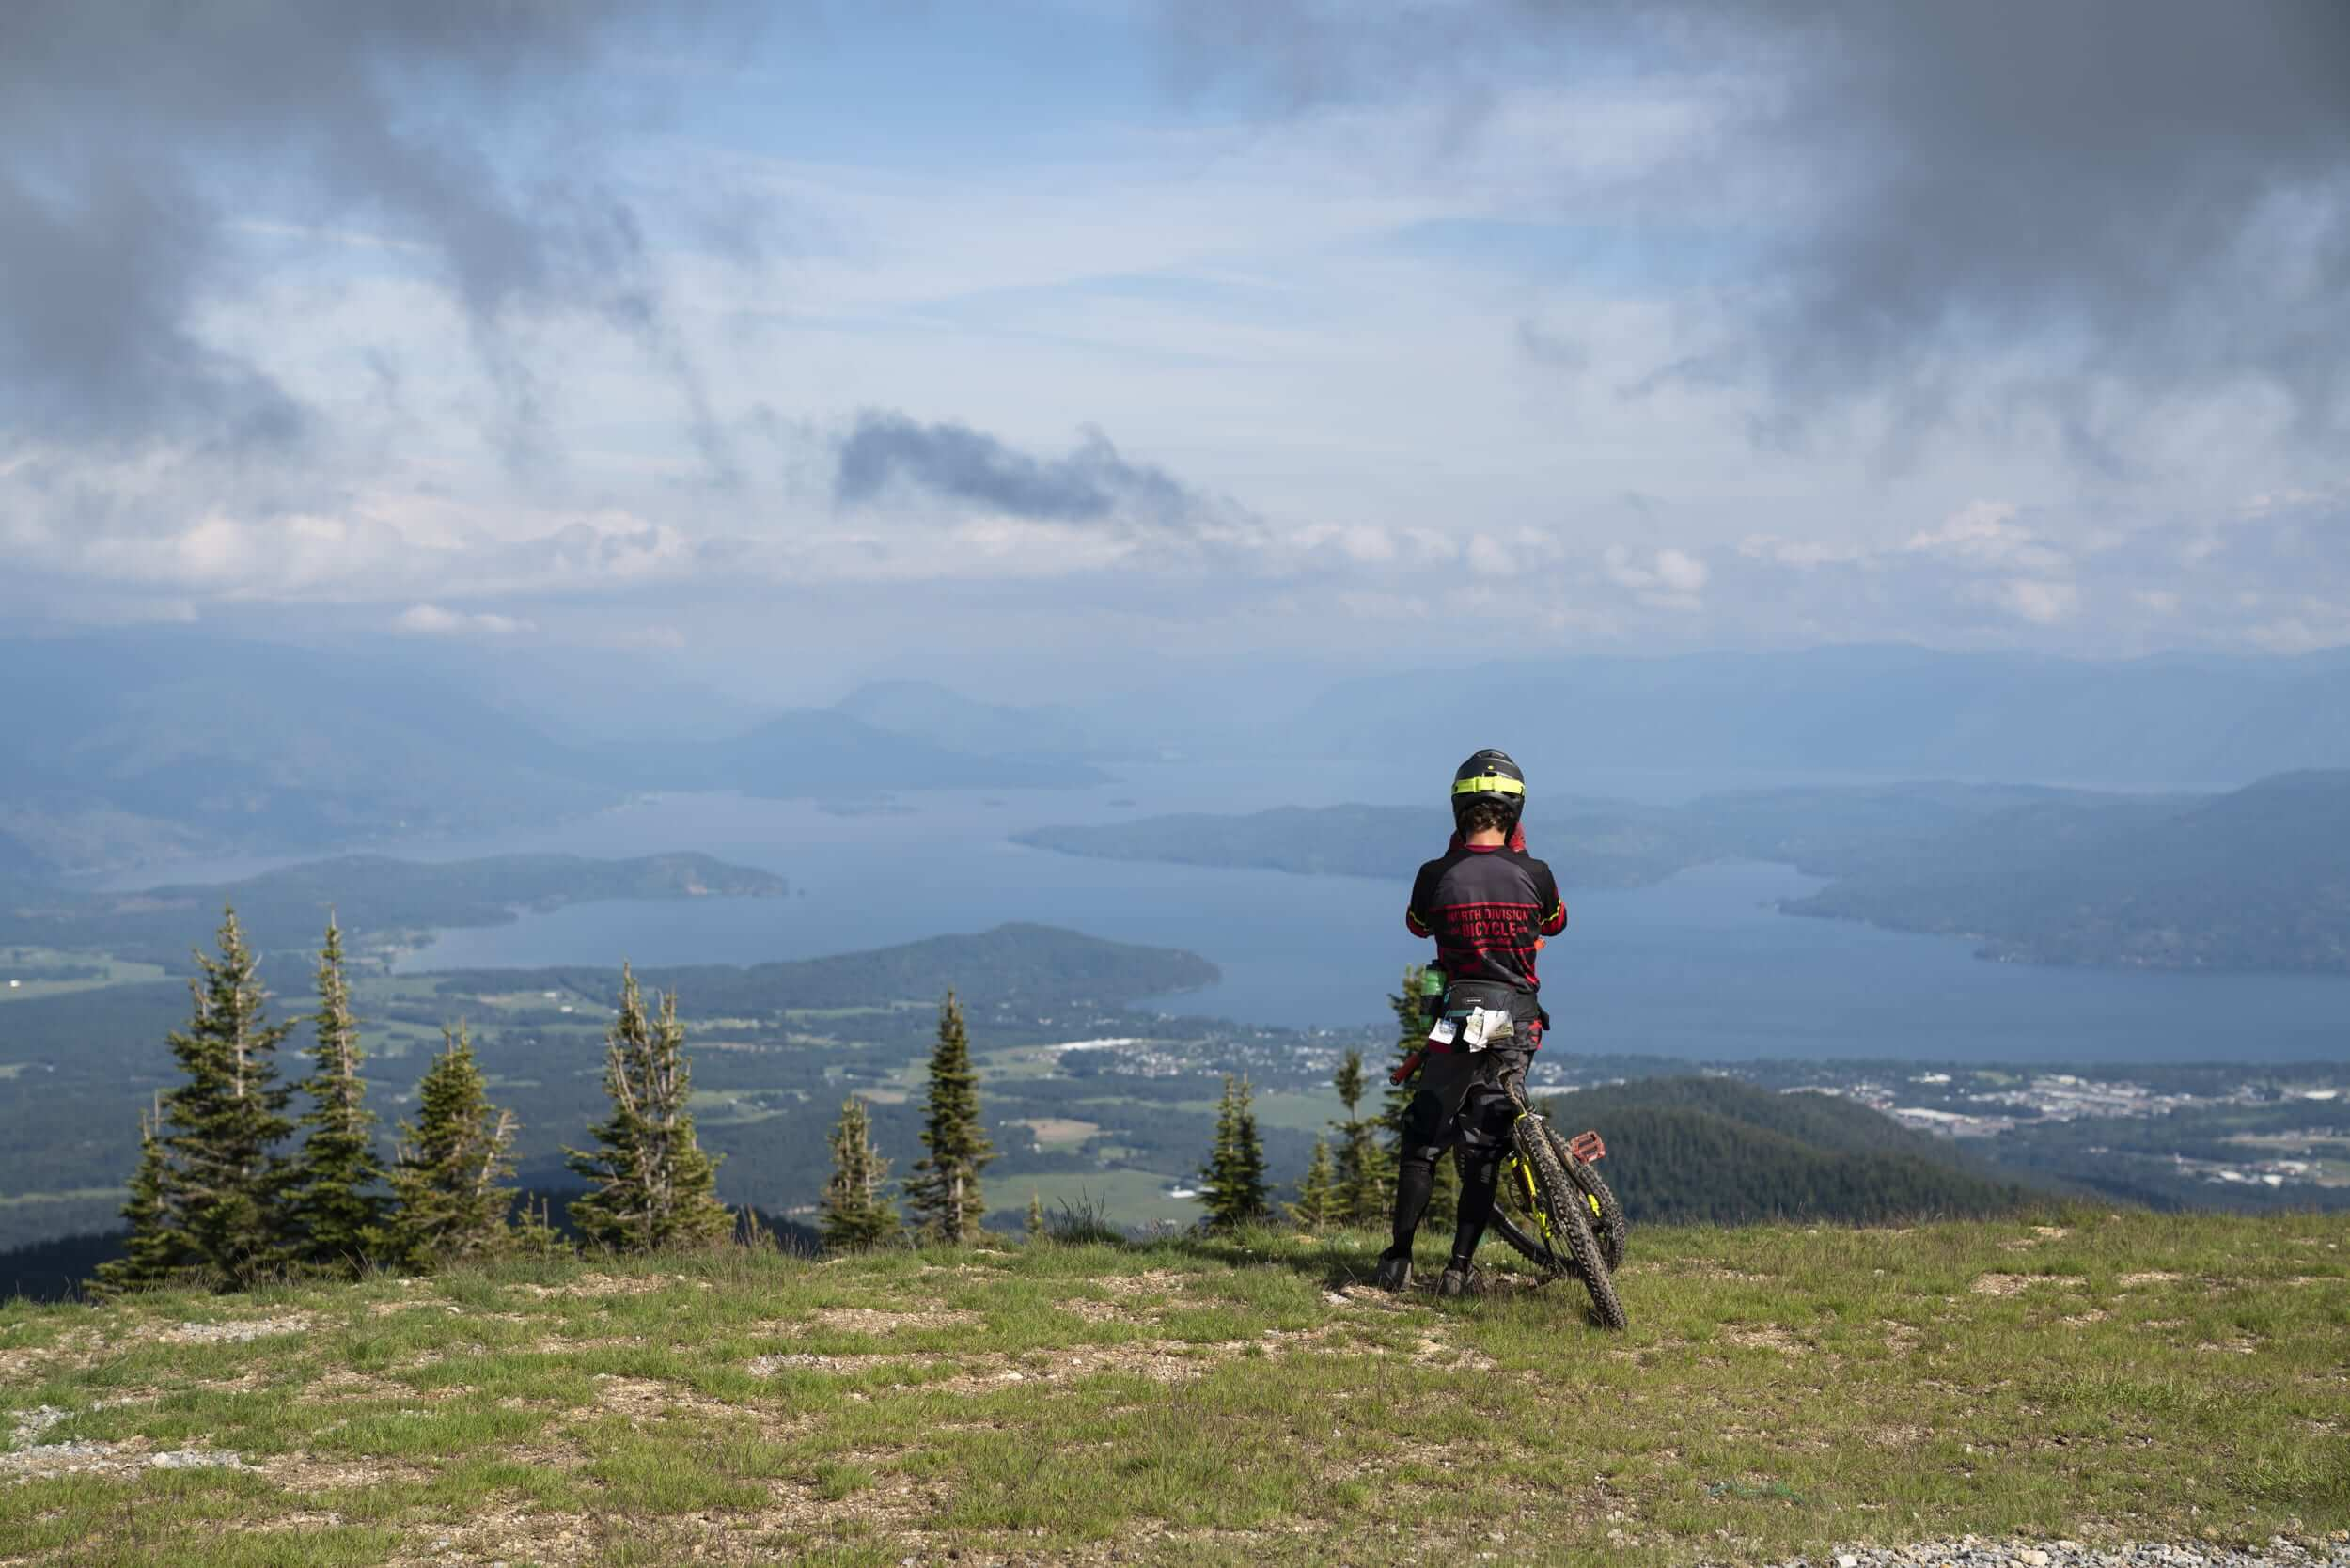 Taking in the view while mountain biking at Schweitzer Mountain Resort